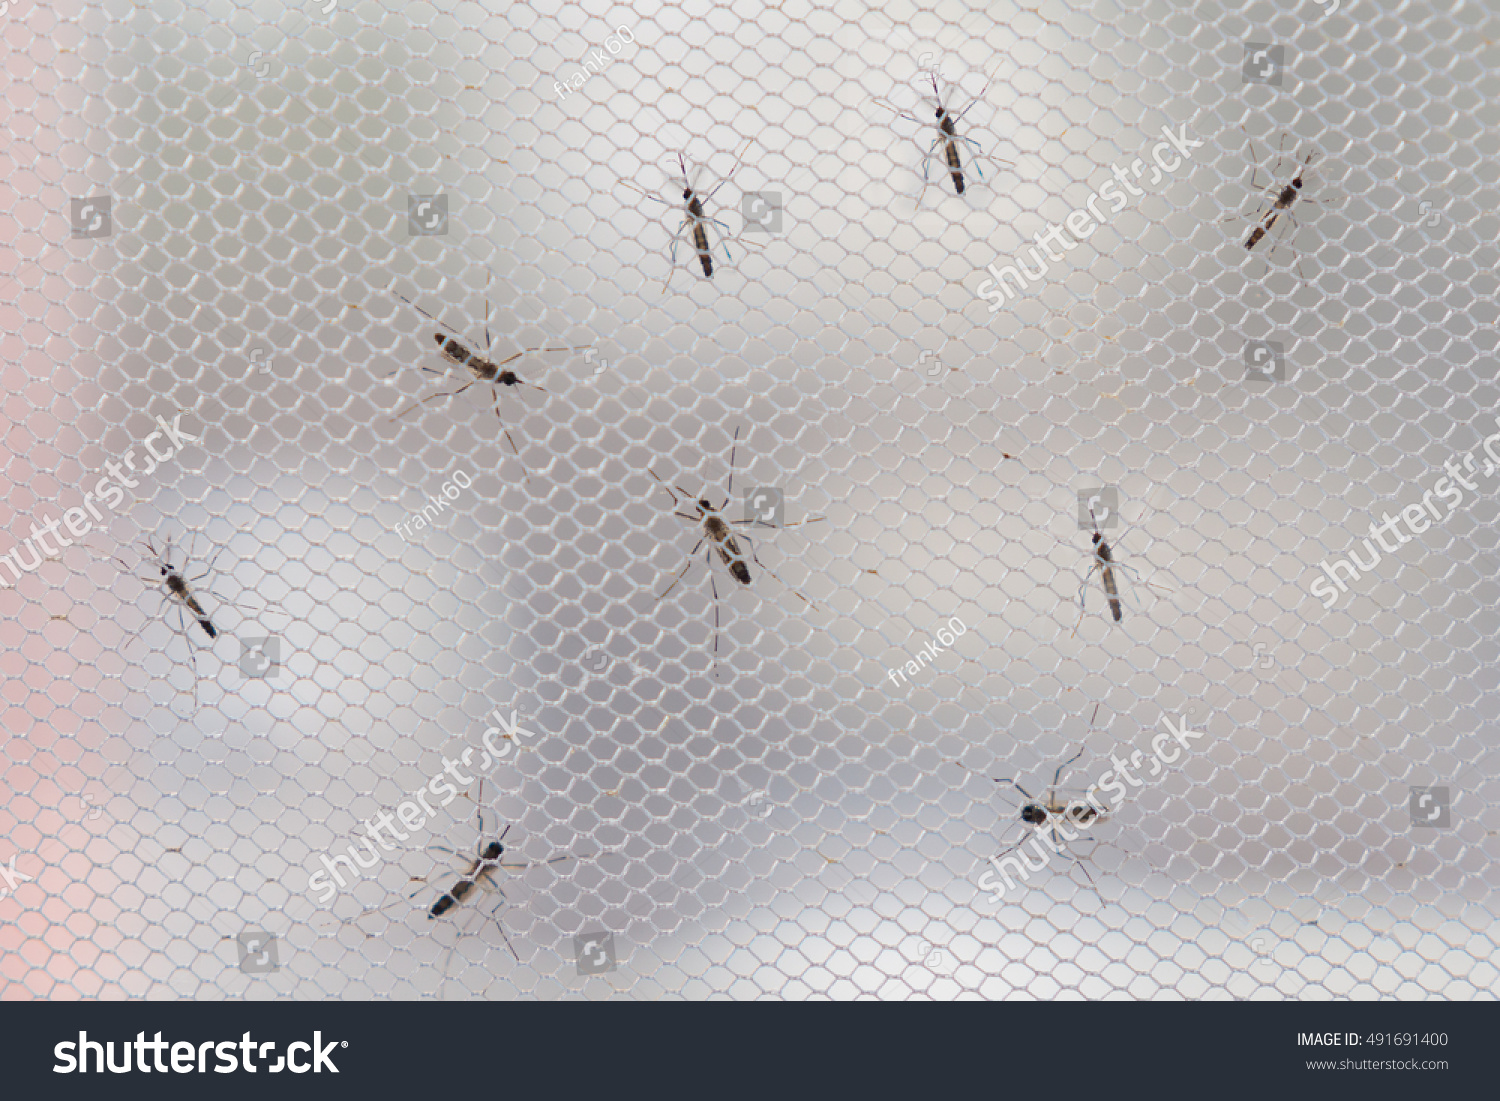 Aedes Aegypti Mosquito On White Mosquito Stock Photo (Royalty Free ...